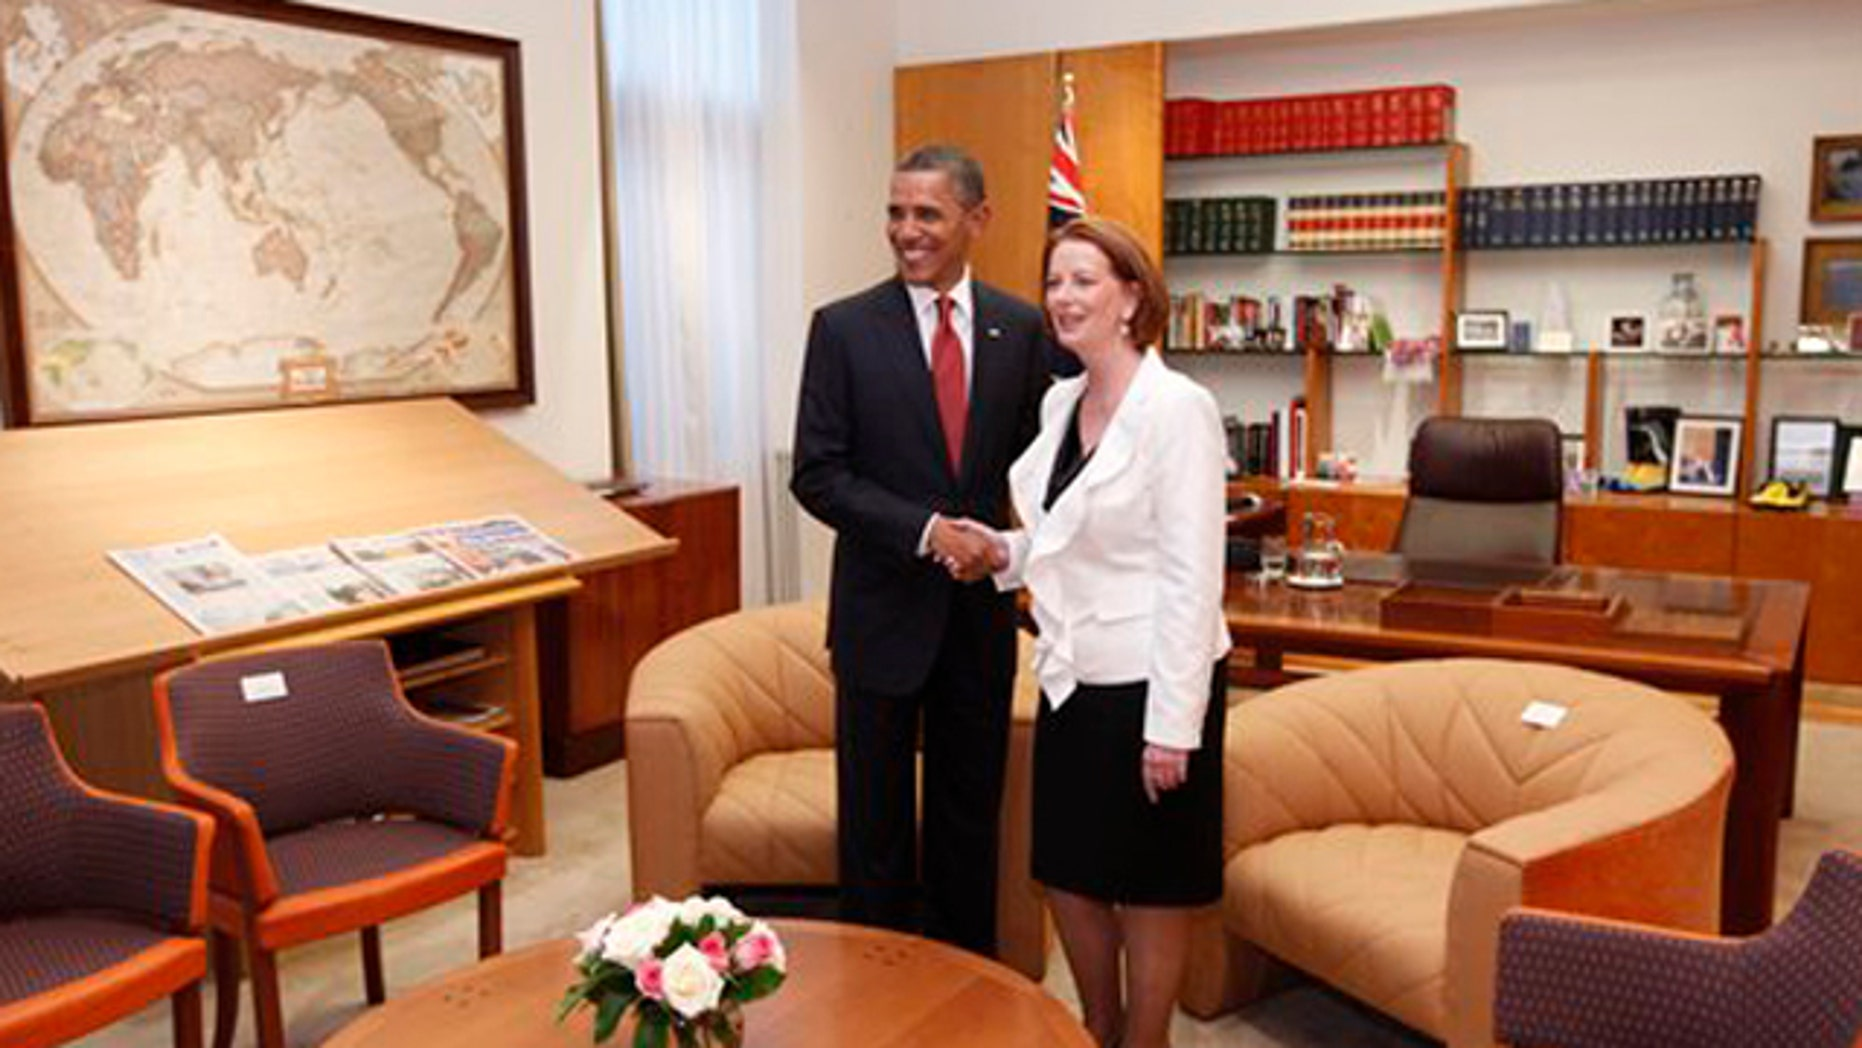 November 16, 2011: U.S. President Barack Obama and Australian Prime Minister Julia Gillard meet in her office at Parliament House in Canberra, Australia.